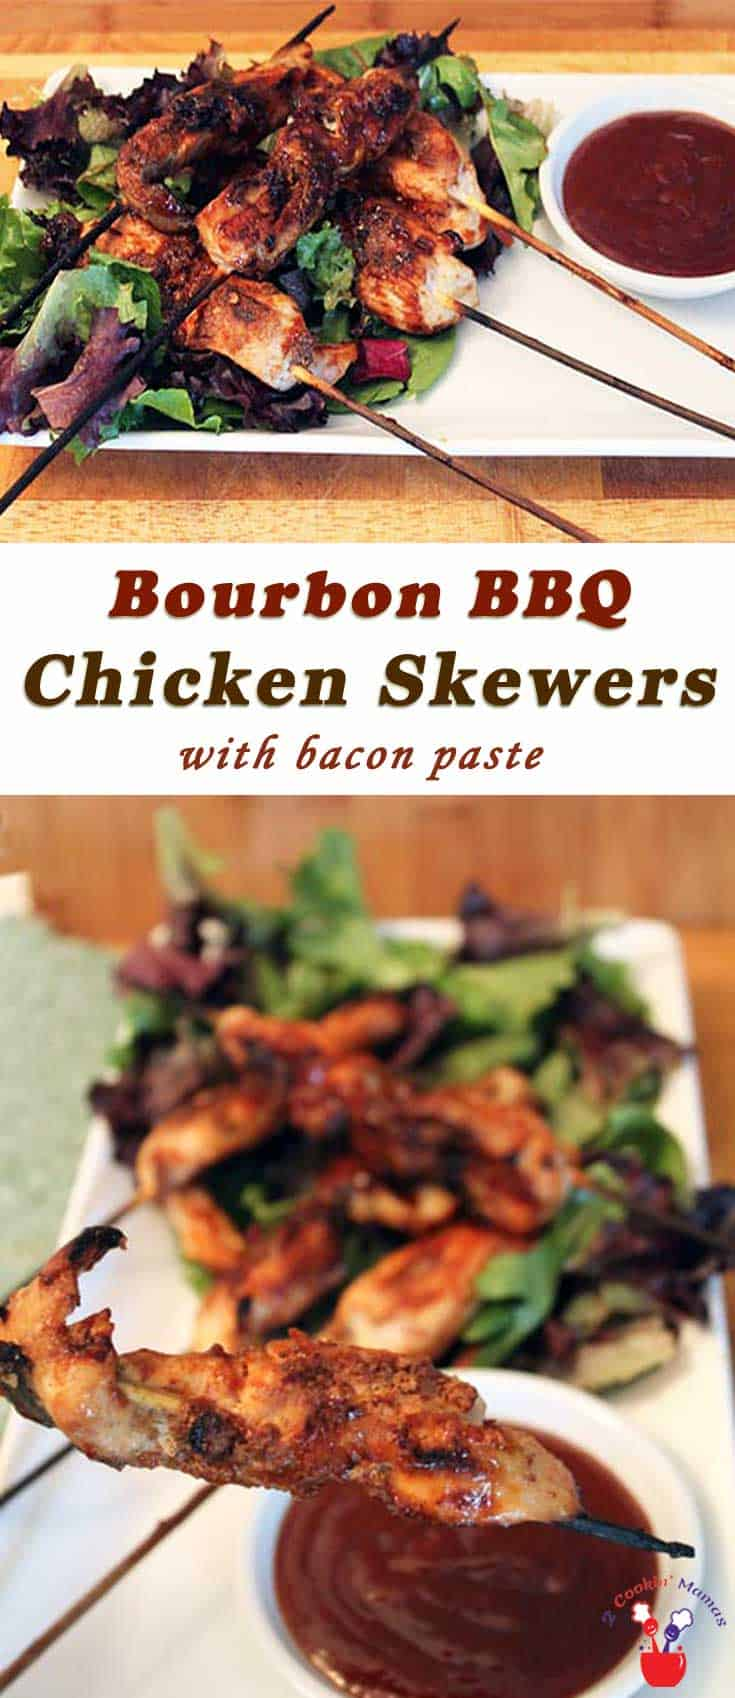 Grilled chicken is brought to a whole new level when smeared with bacon paste & served with a side of  delicious bourbon BBQ sauce. Bourbon BBQ Chicken Skewers recipe. #bacon #grilledchicken #bourbon #dinner #appetizer #BBQ